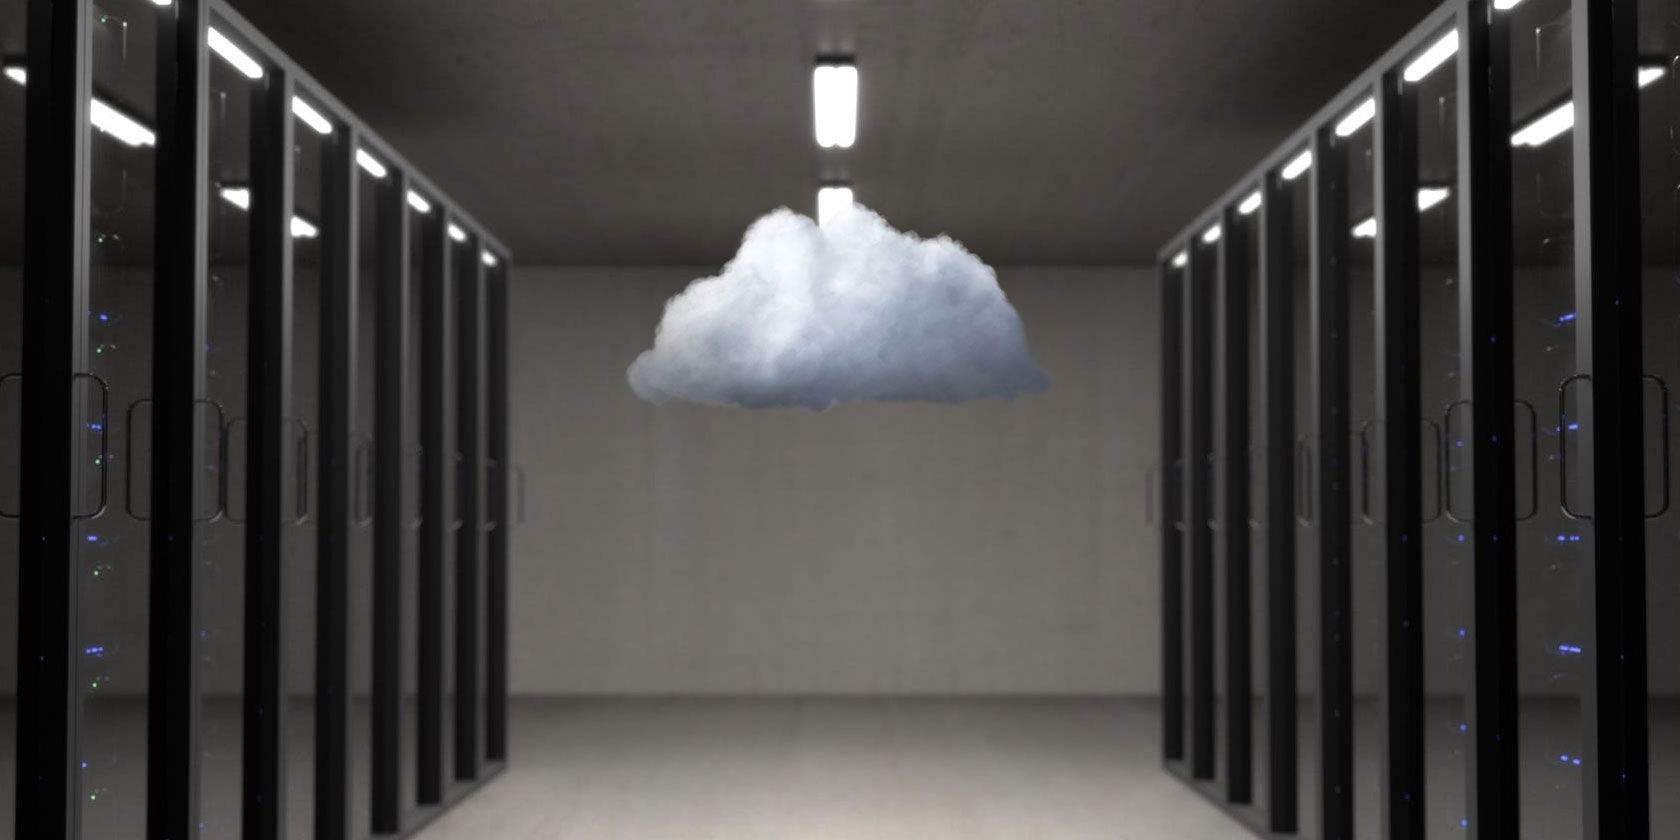 Pin By Makeuseof Technology Simpli On Nado Kupit In 2020 Cloud Storage Clouds Free Cloud Storage